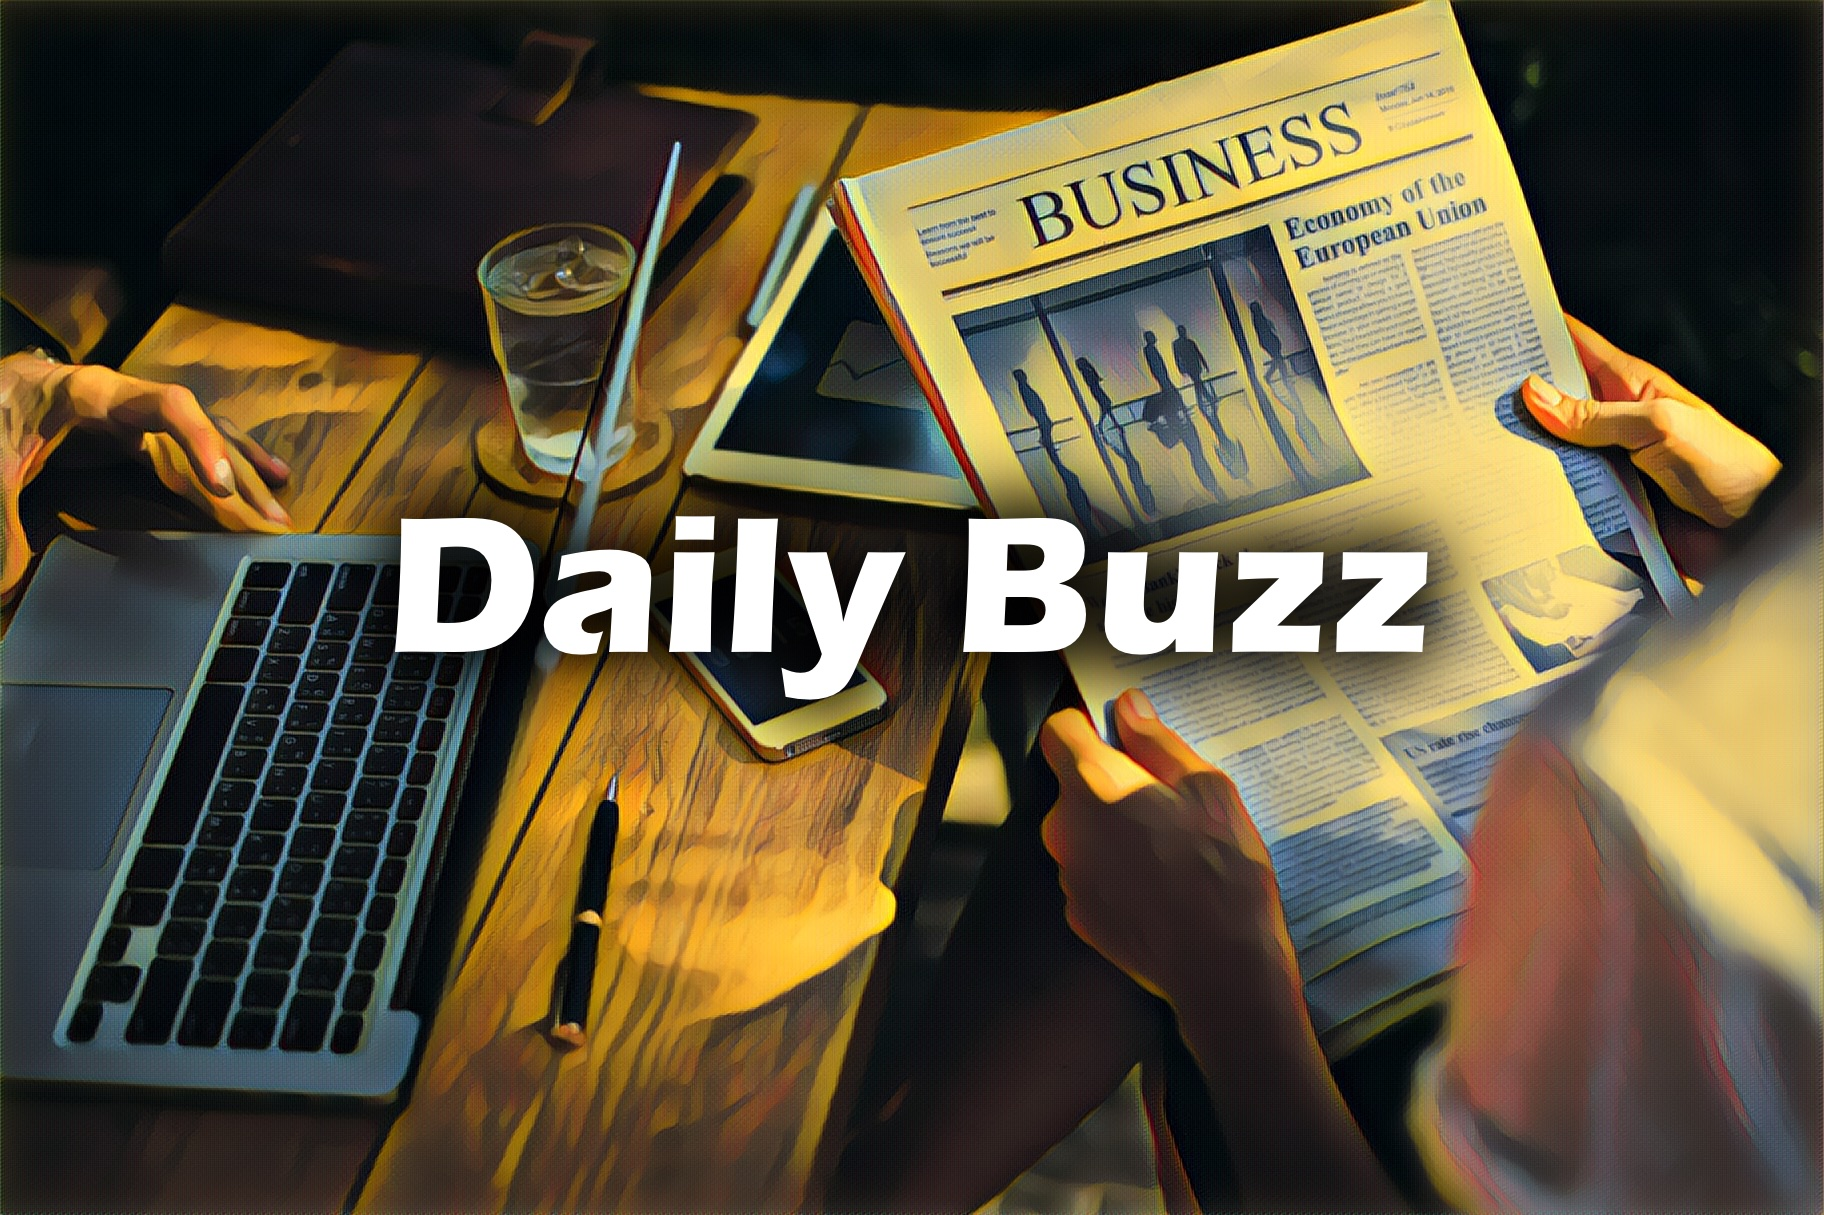 DailyBuzz Wednesday 20 June 2018